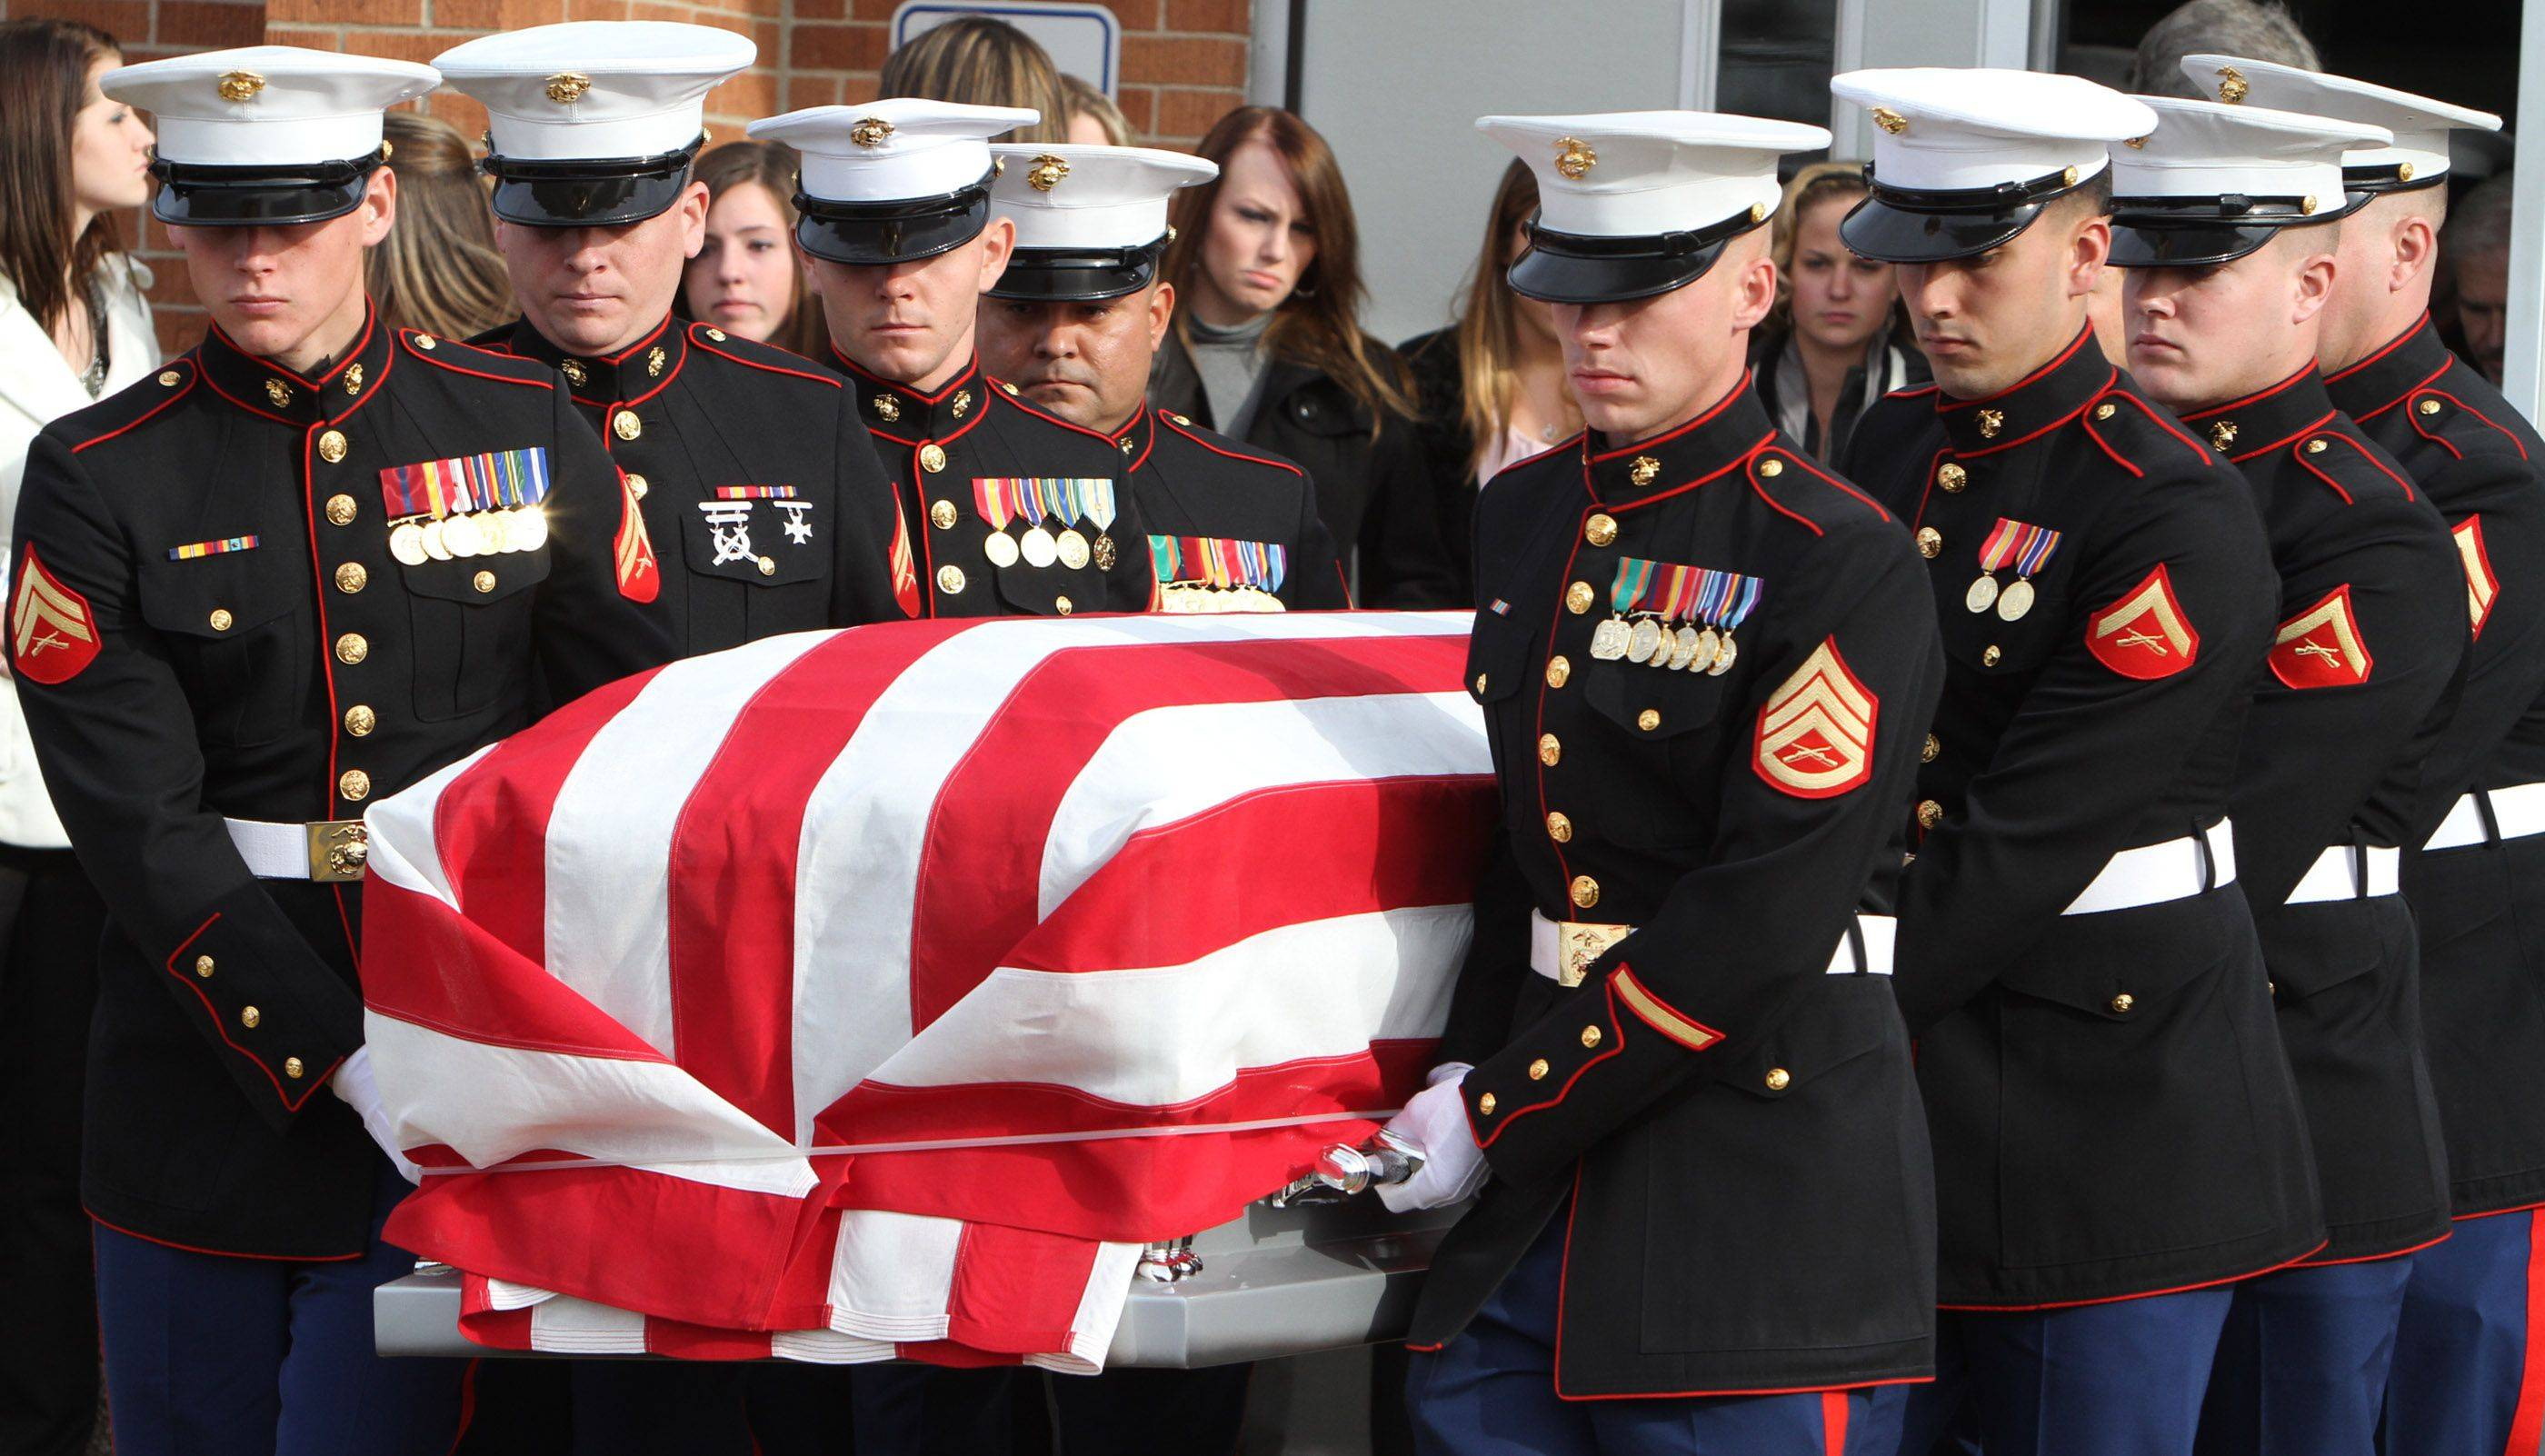 A marine honor guard carries the flag-drapped casket of 20-year-old Marine James Bray Stack, from services at Prospect High School field house in Mt. Prospect on Saturday, November 20, 2010.